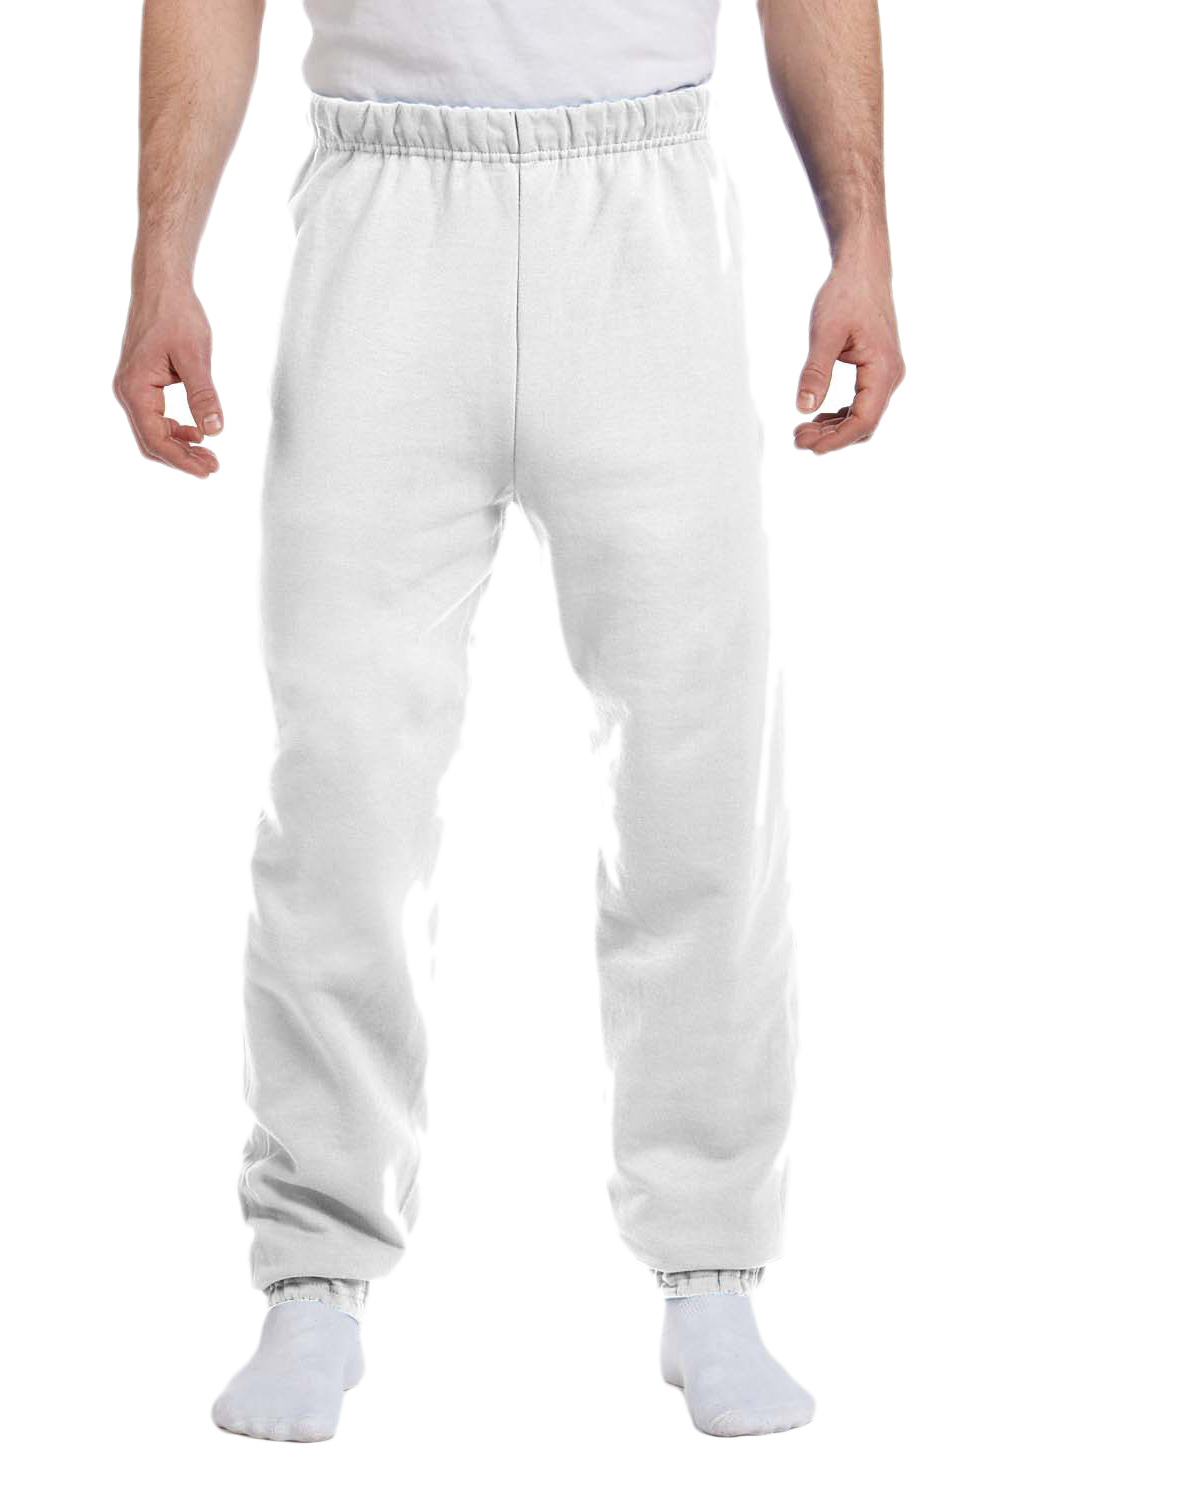 Jerzees 973 Men 8 oz., 50/50 NuBlend Fleece Sweatpants White at GotApparel